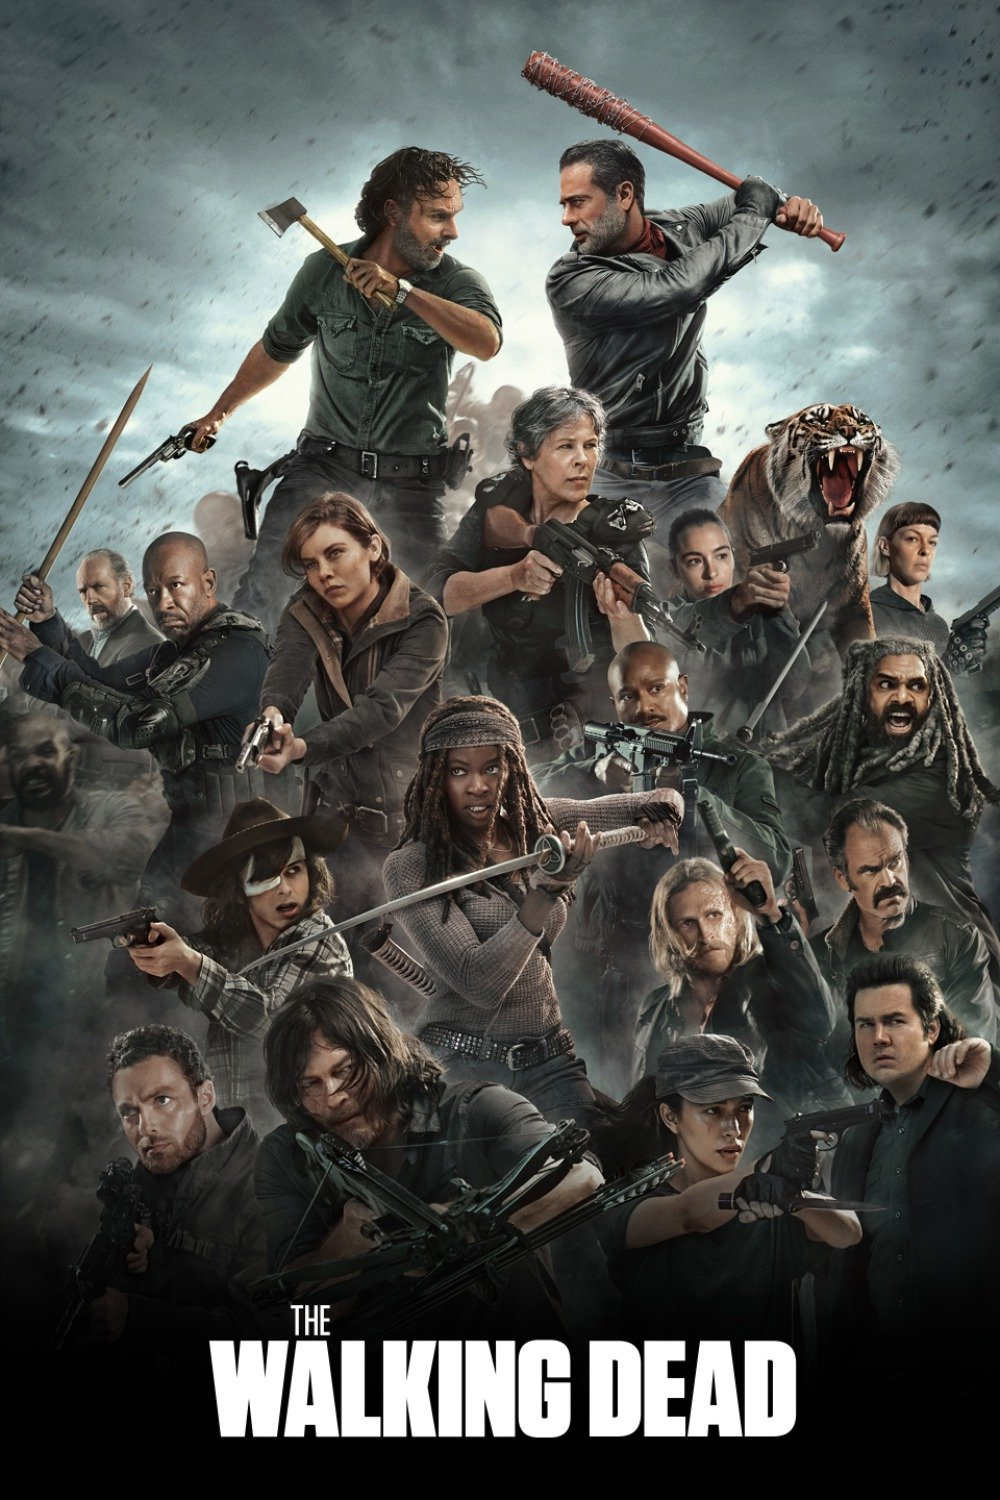 The Walking Dead - Saison 10 Qualité Webrip | VOSTFR